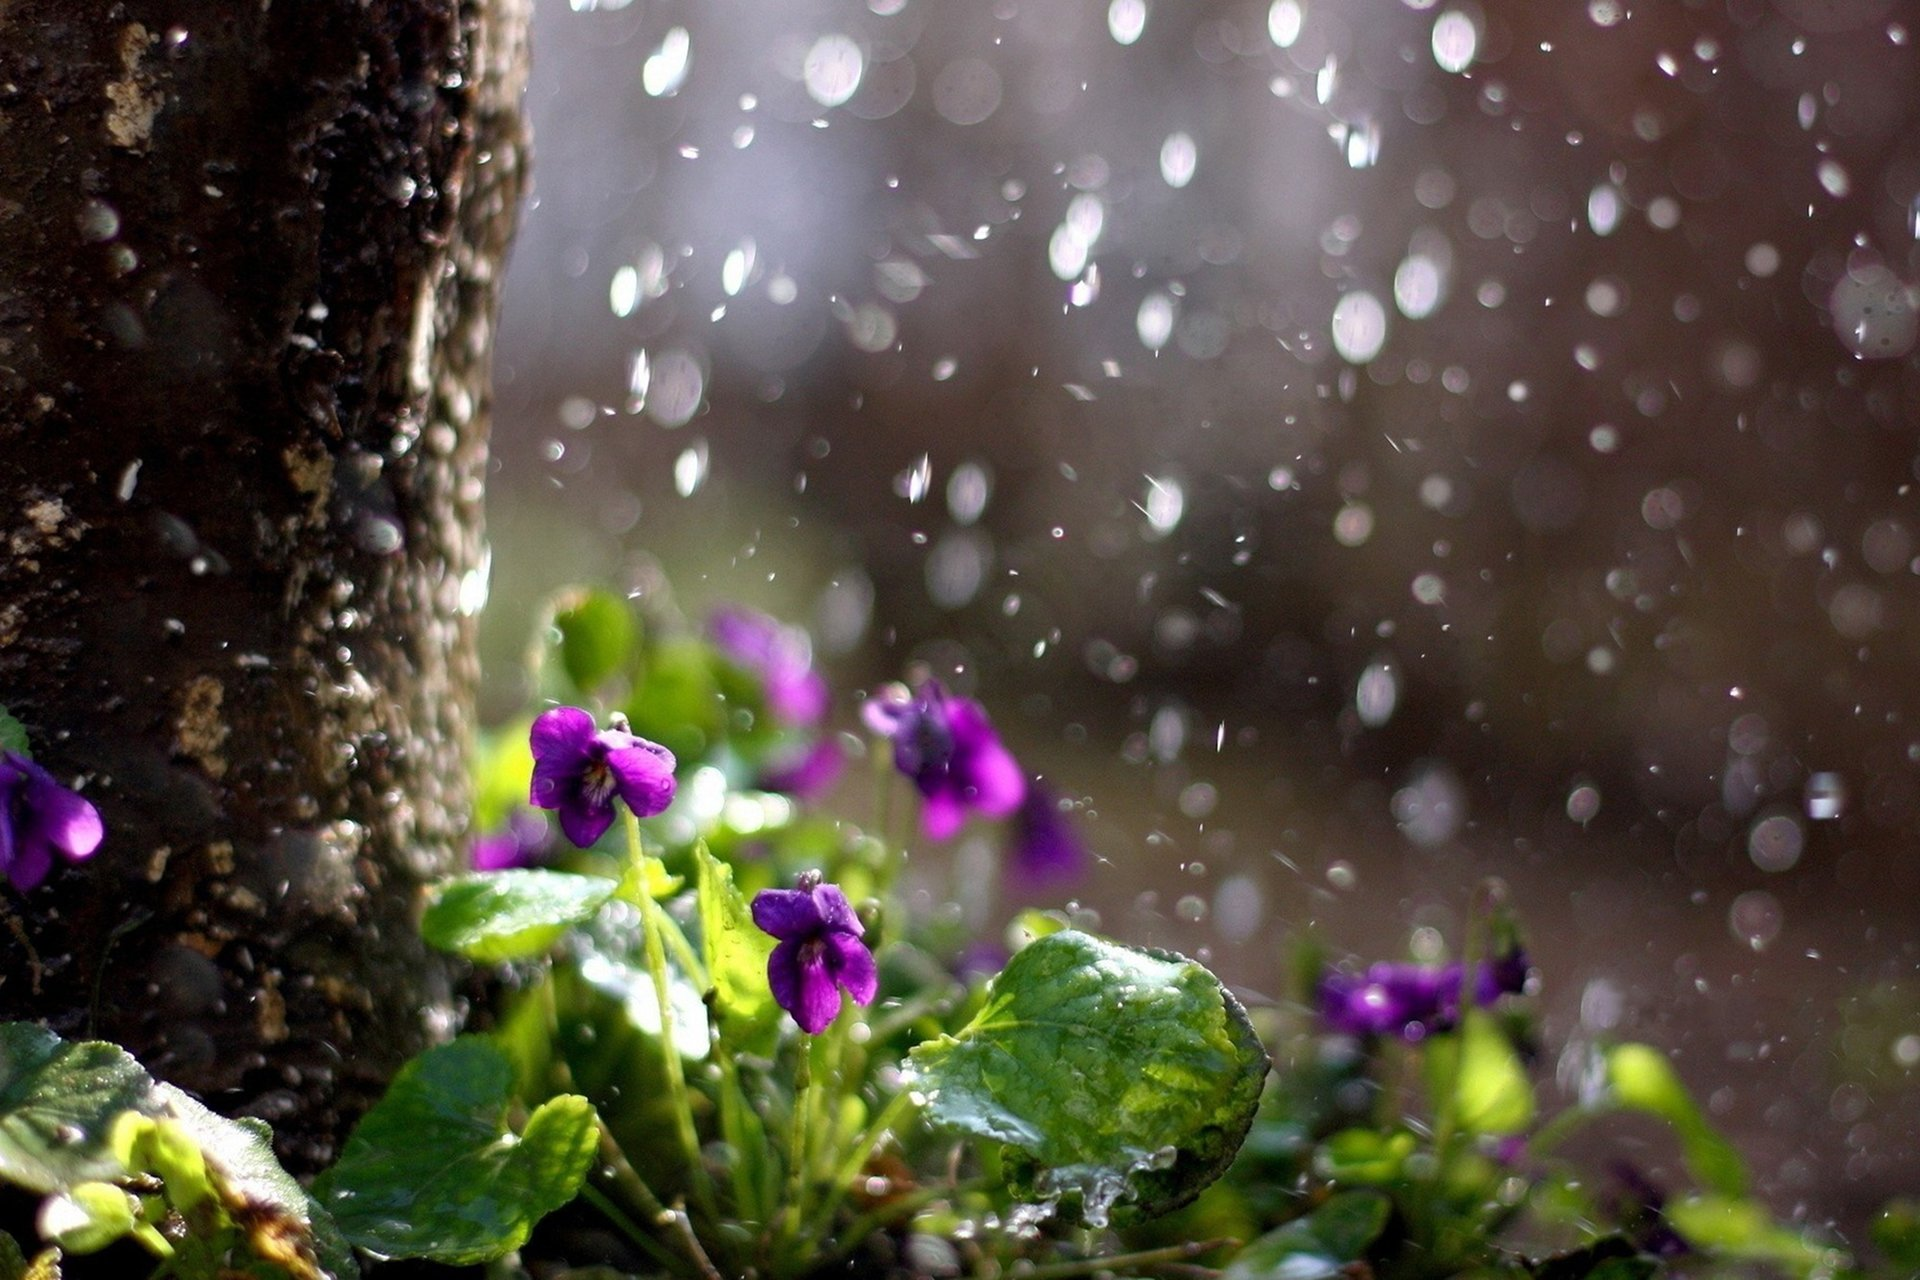 Rain full hd wallpaper and background image 1920x1280 id255591 photography rain flower wallpaper altavistaventures Image collections